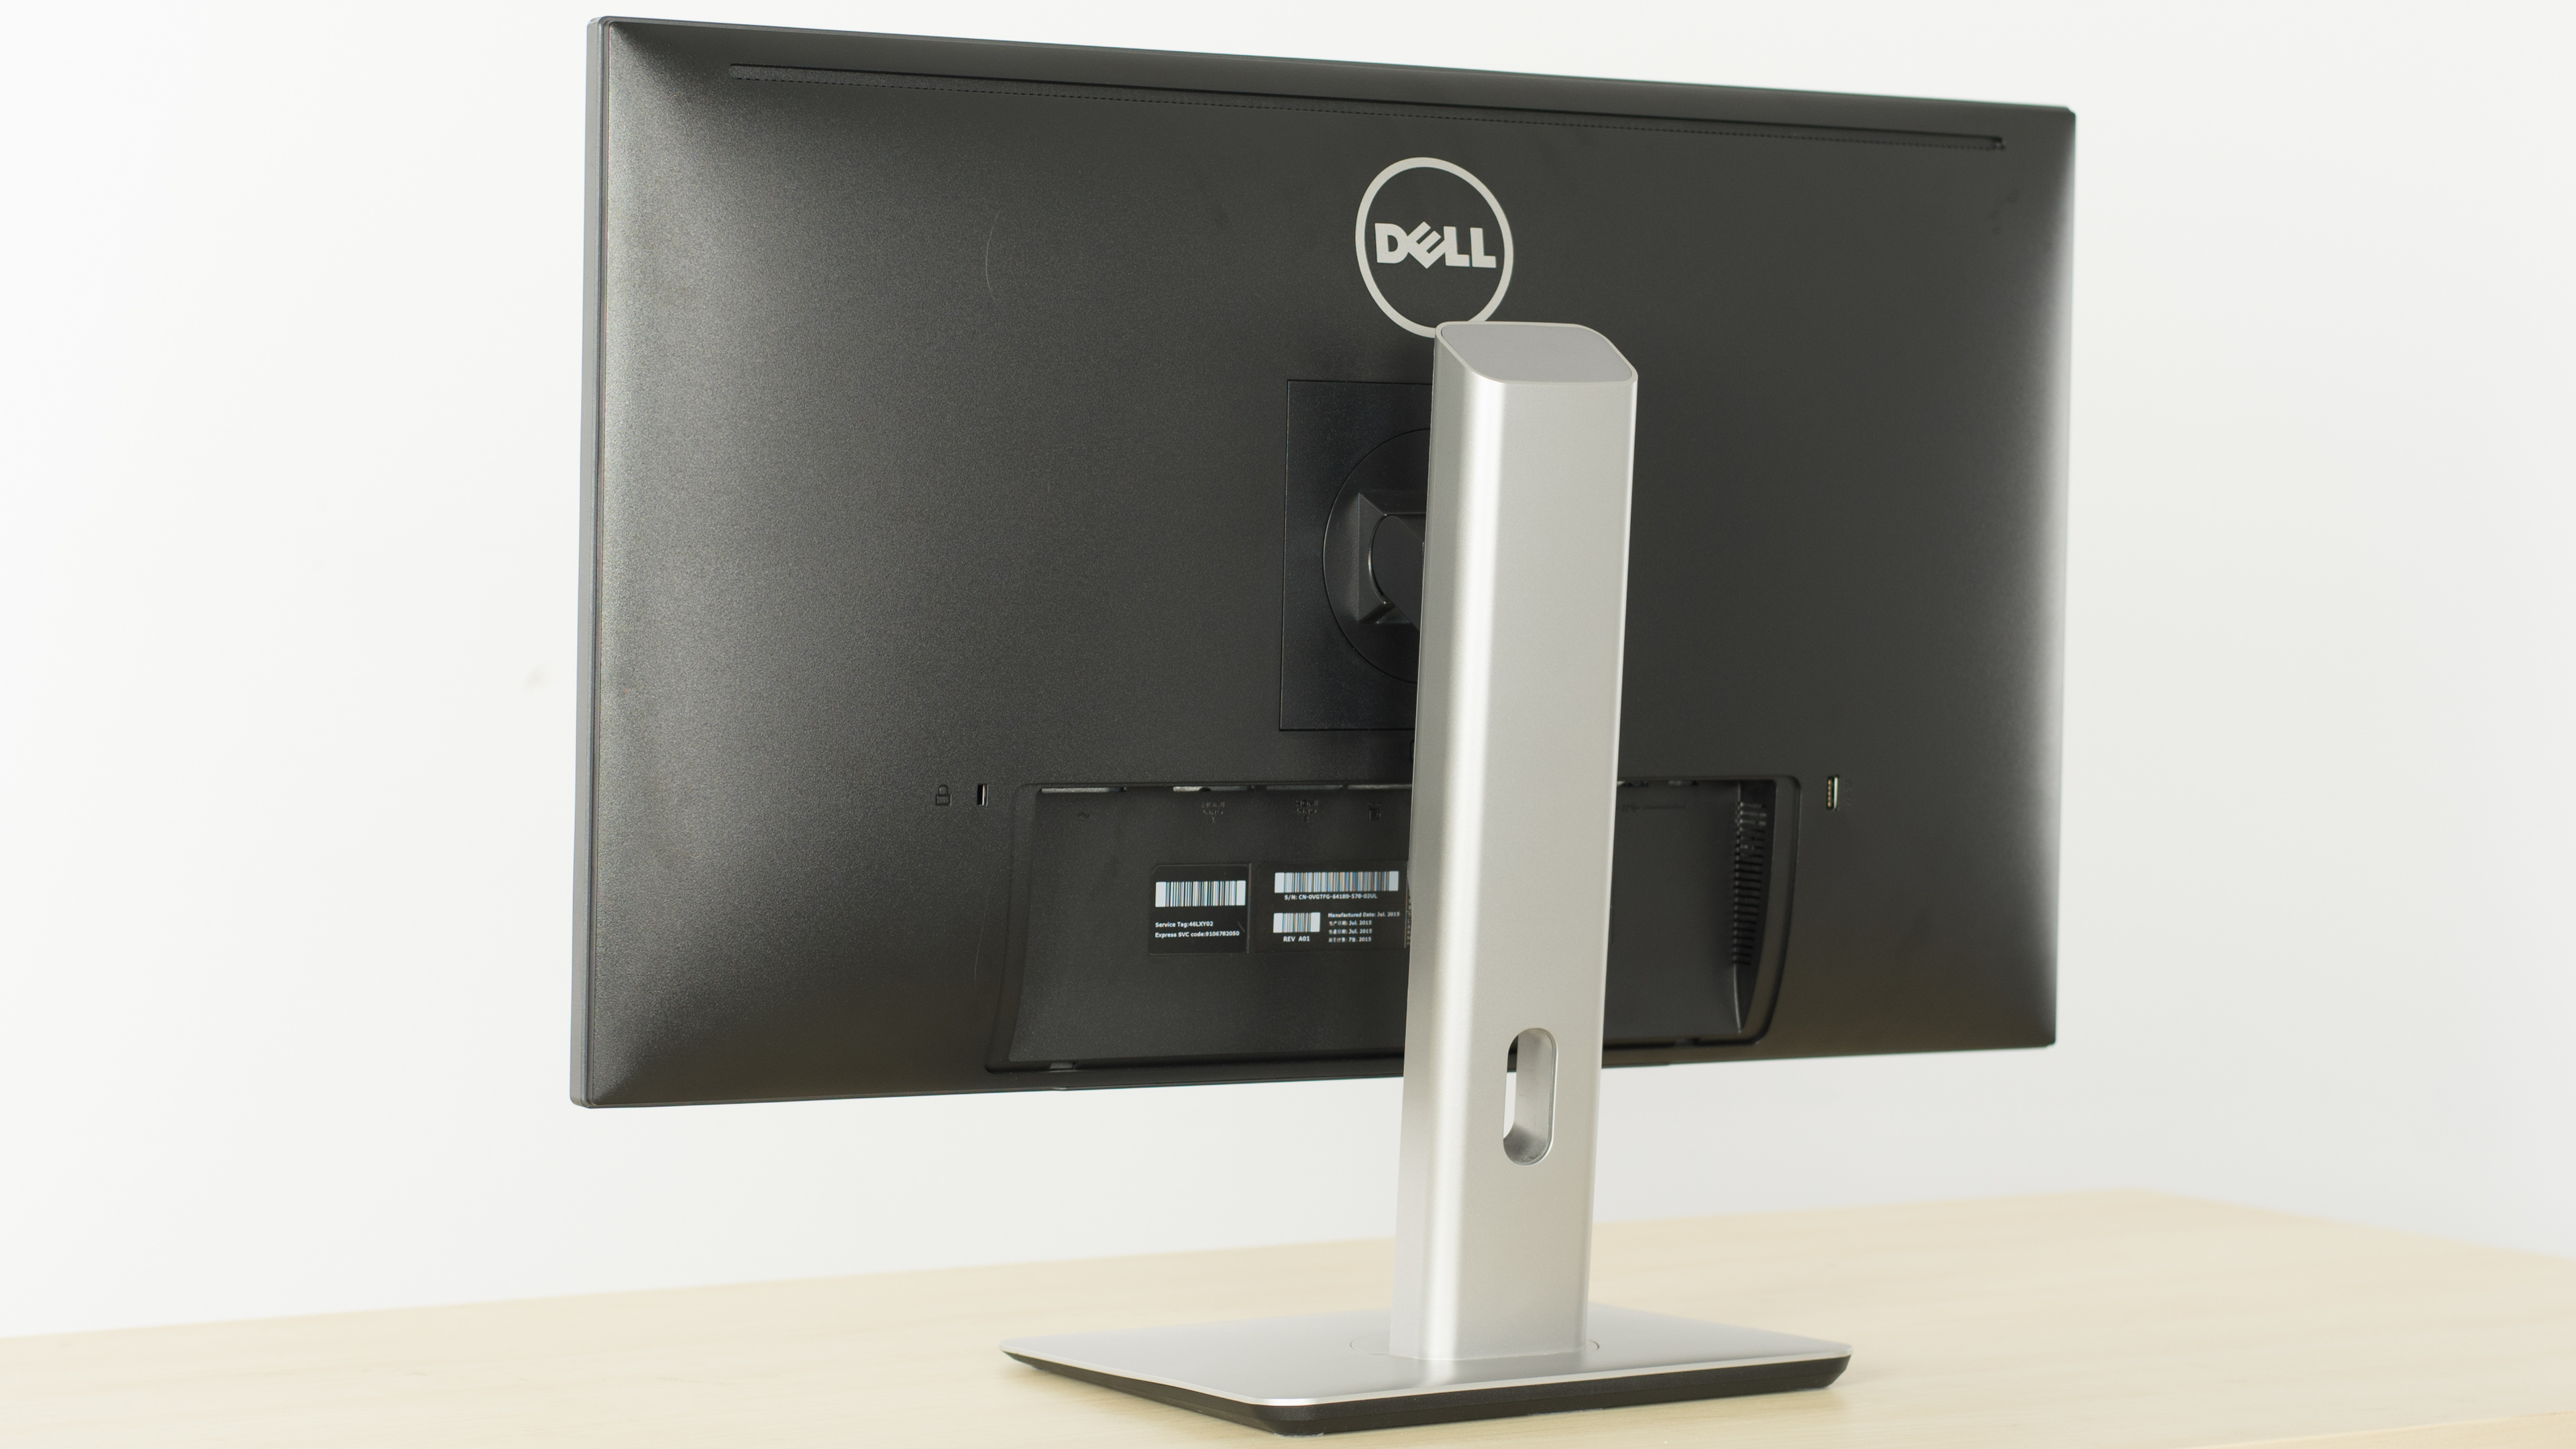 DELL U2715H DOWNLOAD DRIVER